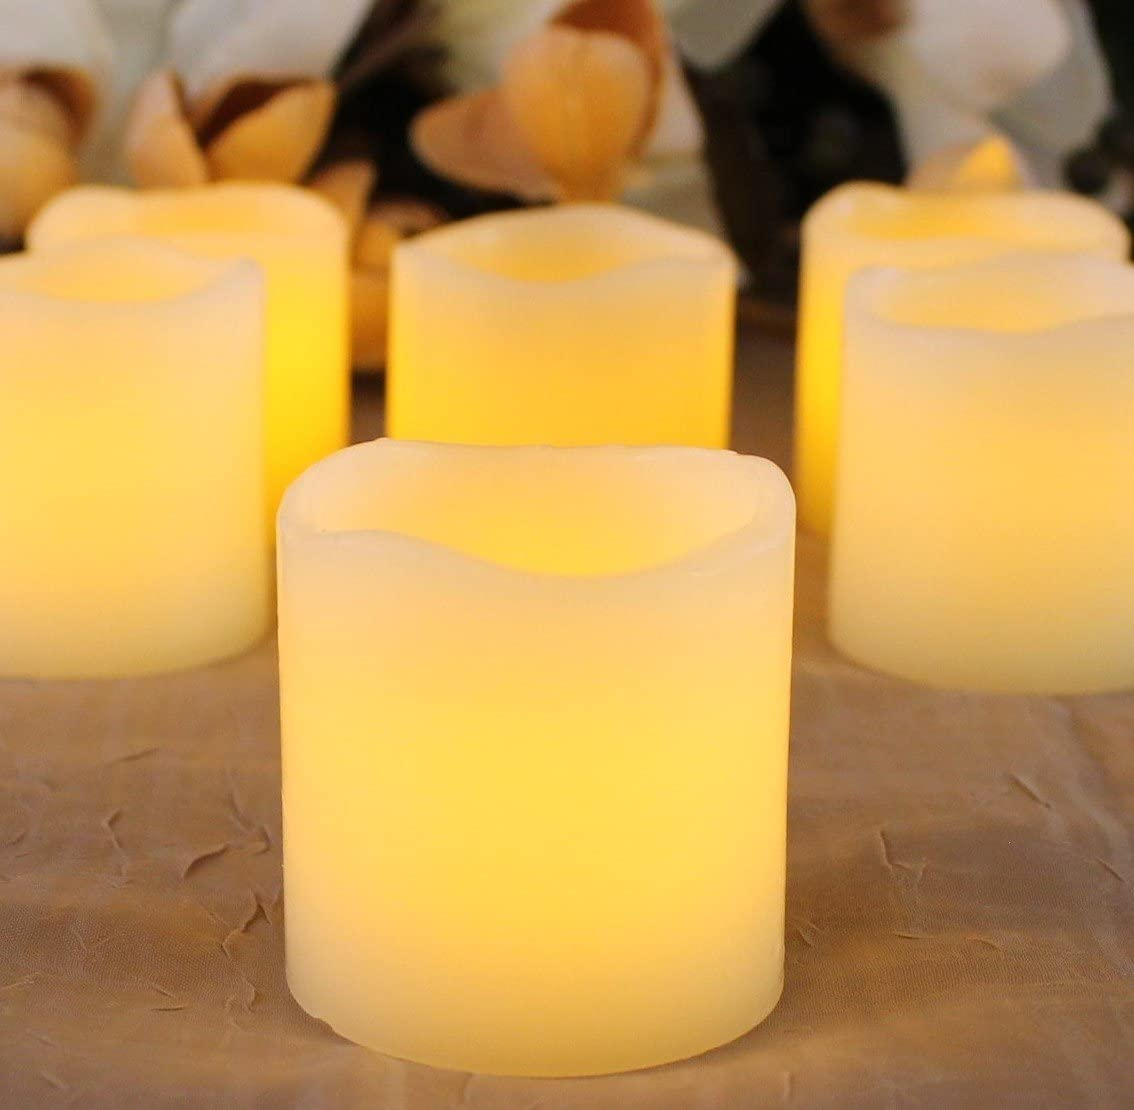 "LED Lytes Battery Operated Candles - Set of 6 Ivory Wax Candles 2"" Tall and 2"" Wide with amber yellow Flame"